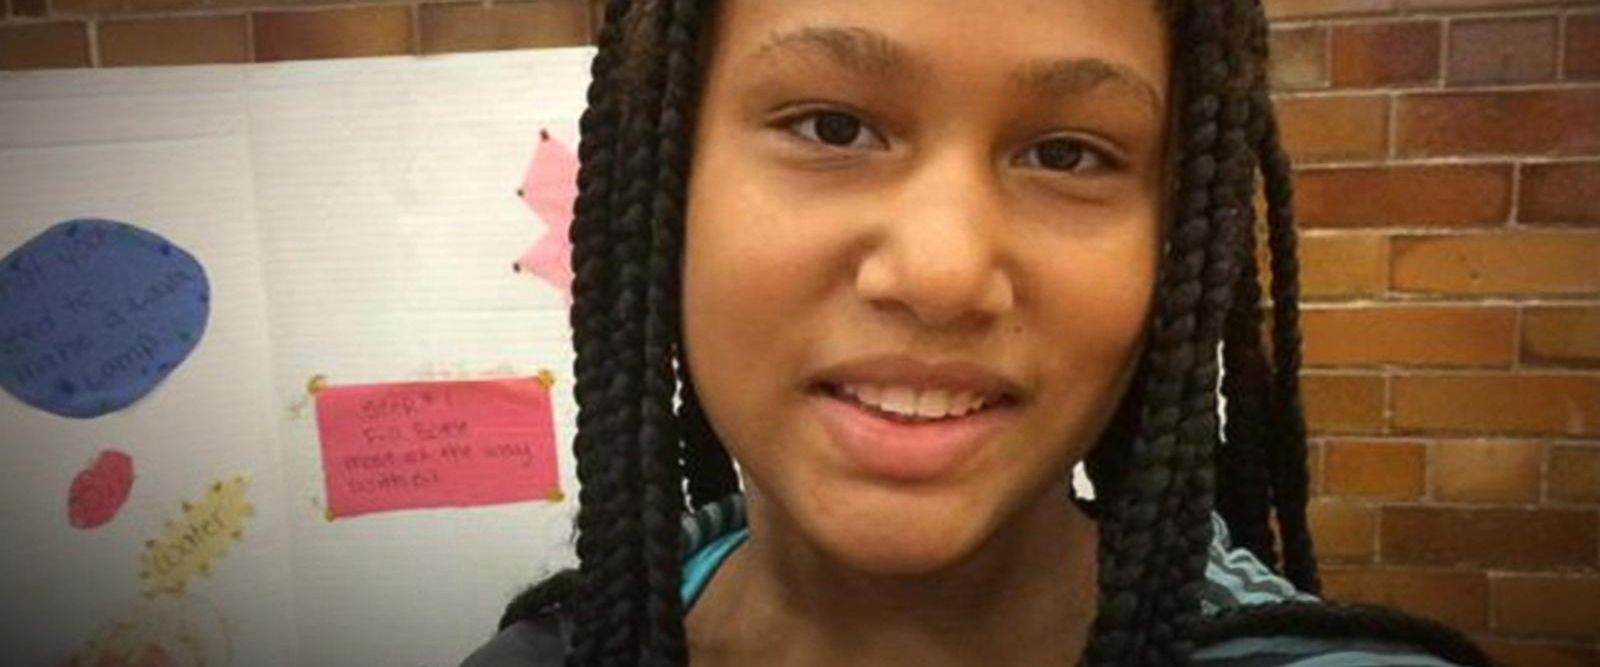 VIDEO: 11-year-old girl wrongfully handcuffed by police in front of mother and aunt